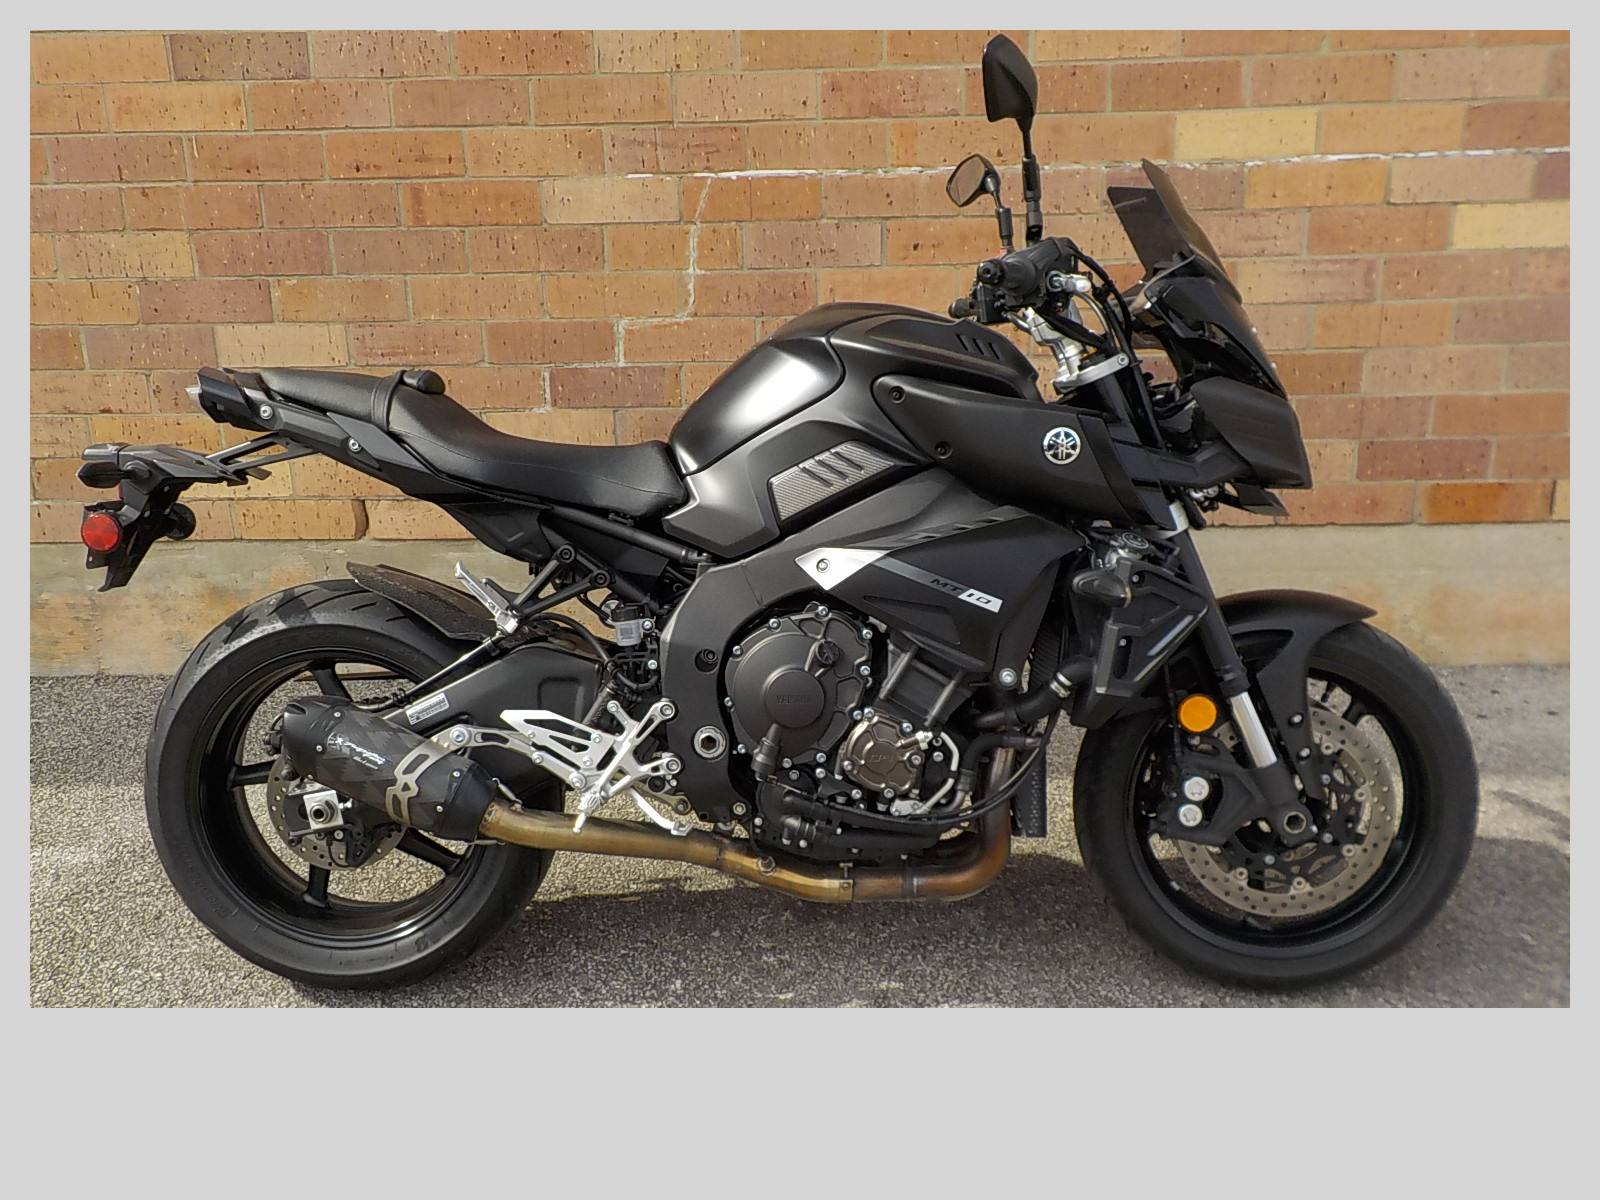 2019 Yamaha MT-10 in San Antonio, Texas - Photo 1